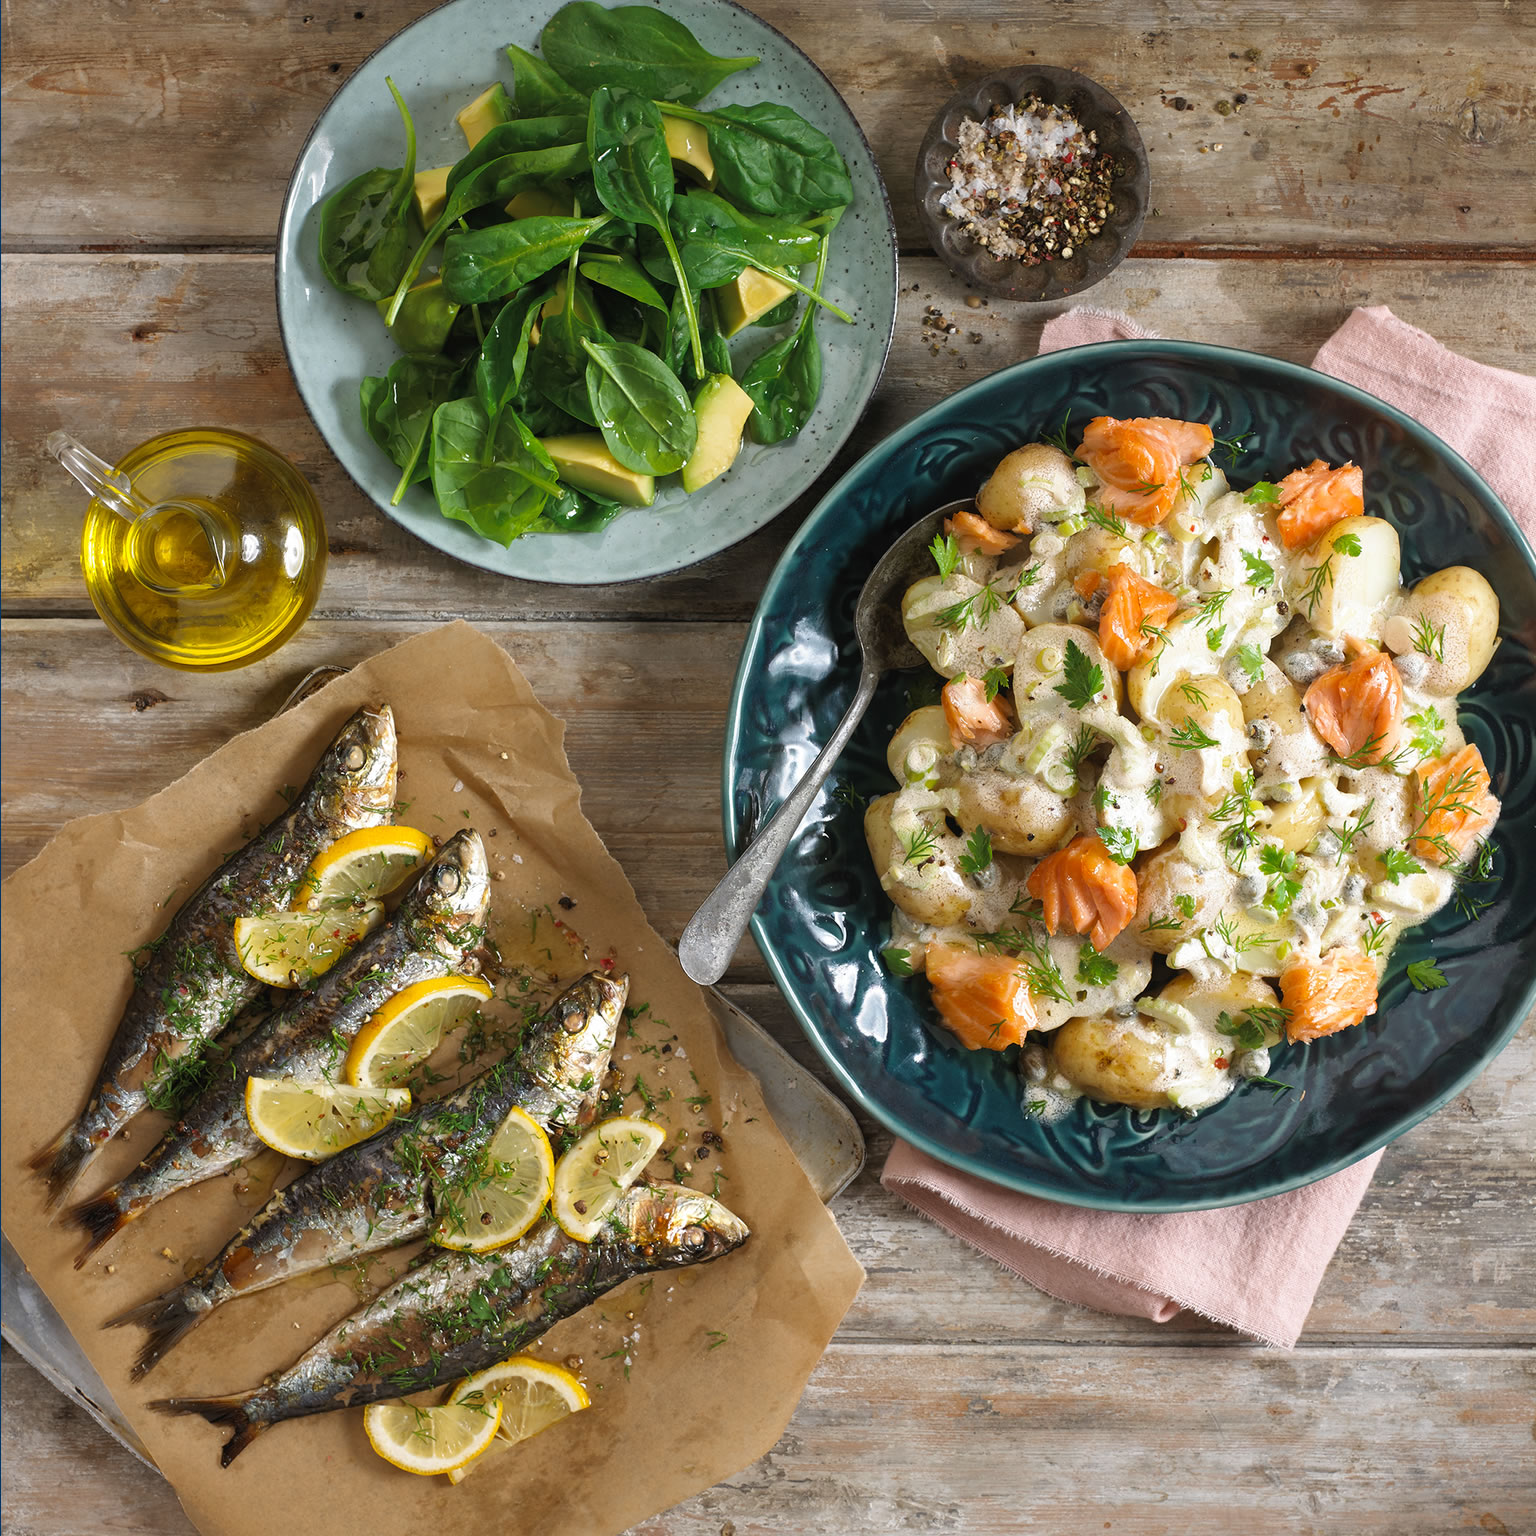 Scandinavian Omega 3 Potato Salad